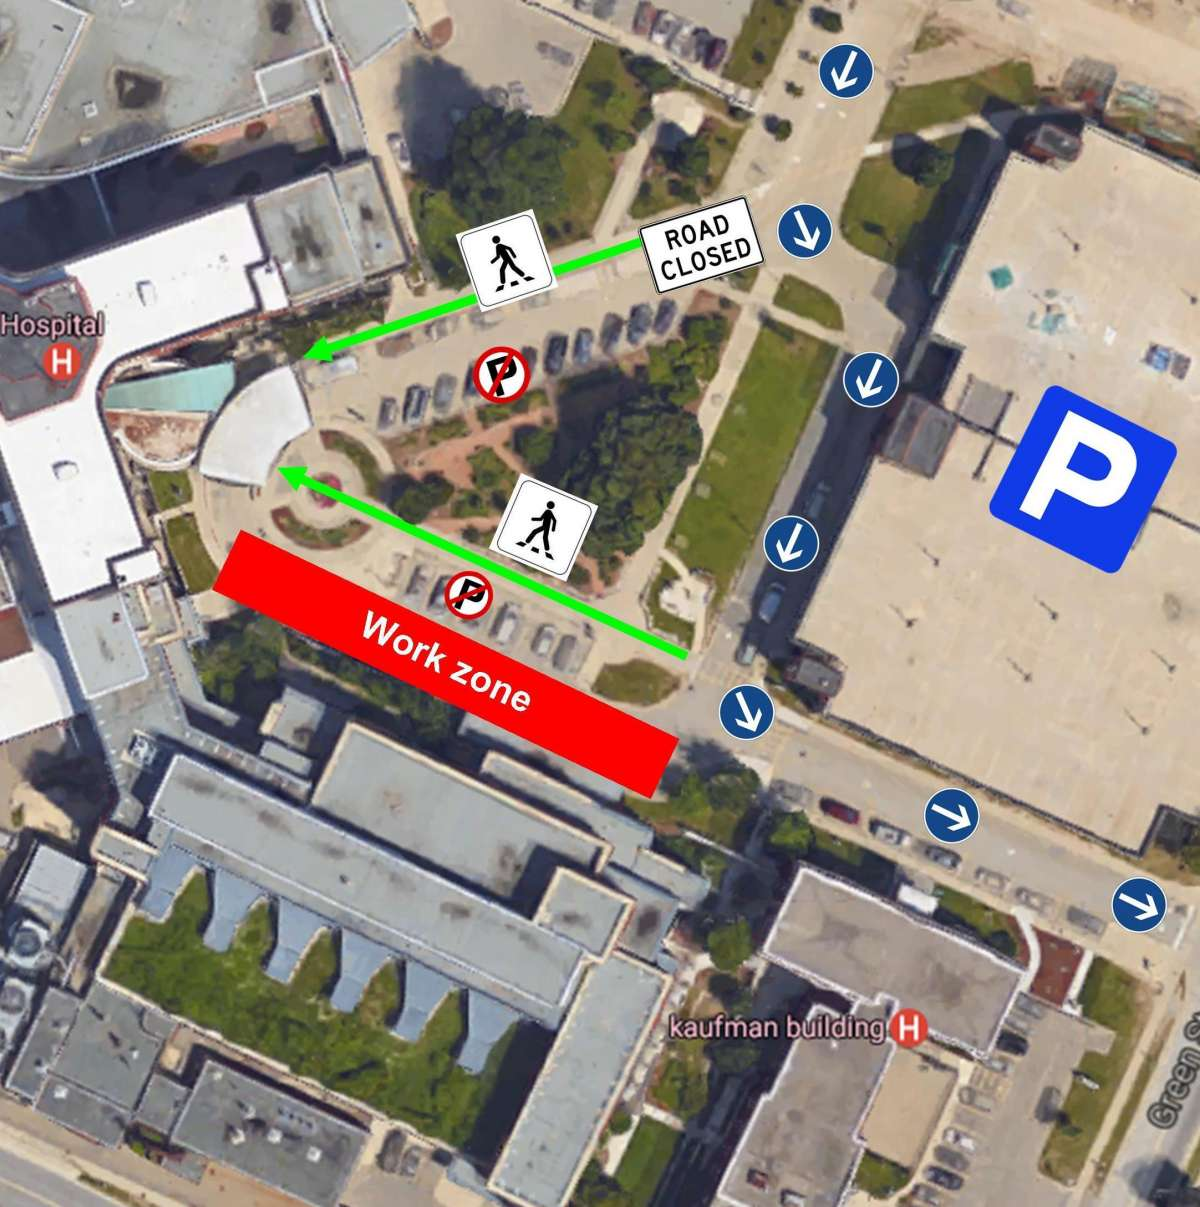 A map showing the closed main driveway at the KW Campus on Sunday January 29th. Vehicles will be re-routed. Pedestrians will still be able to access the main entrance of the hospital.